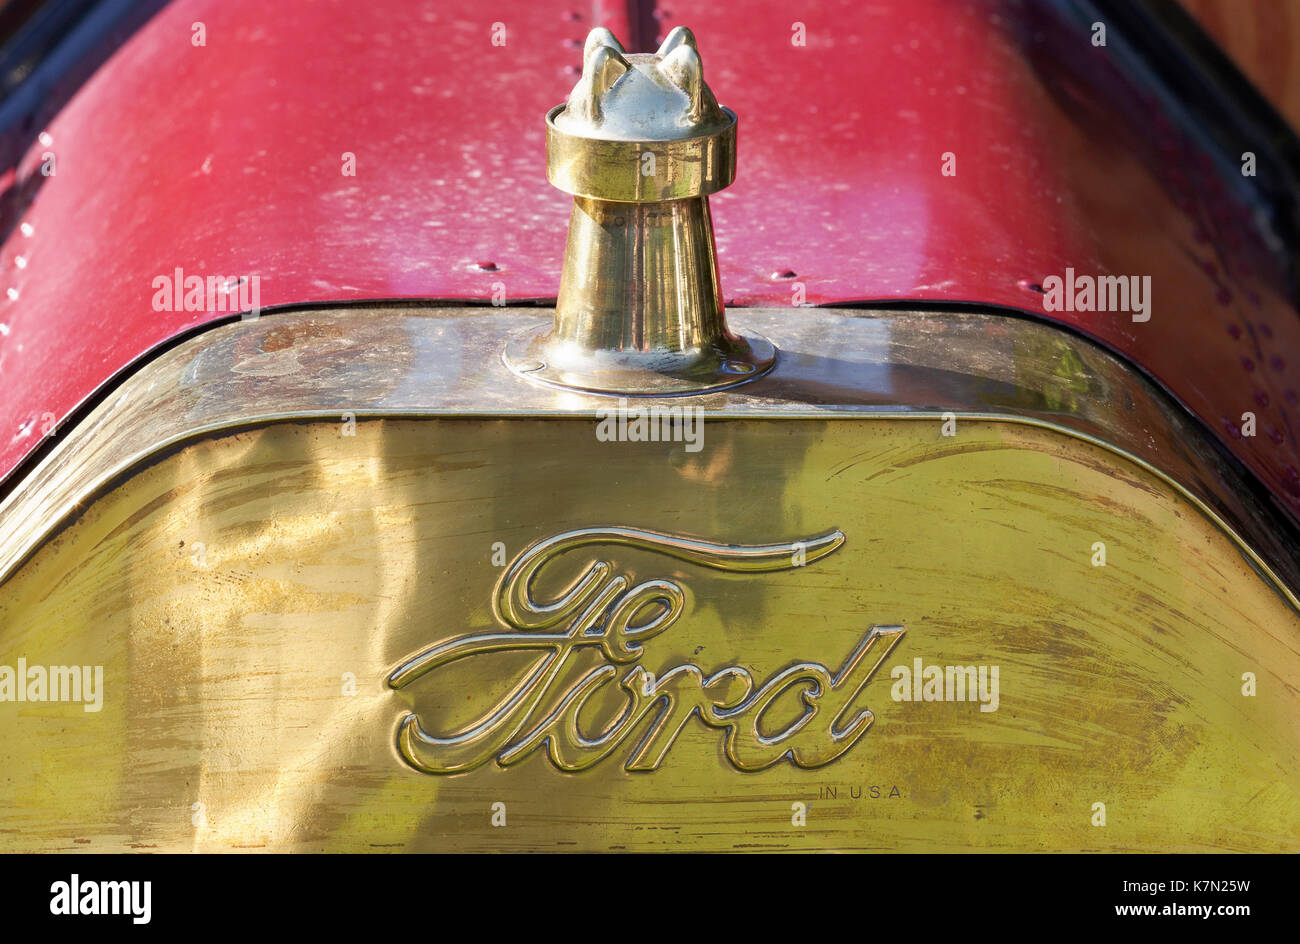 Historic Brass Cooler with Ford logo, Ford Model T, US vintage car from 1912, Classic Days Schloss Dyck, Jüchen Stock Photo